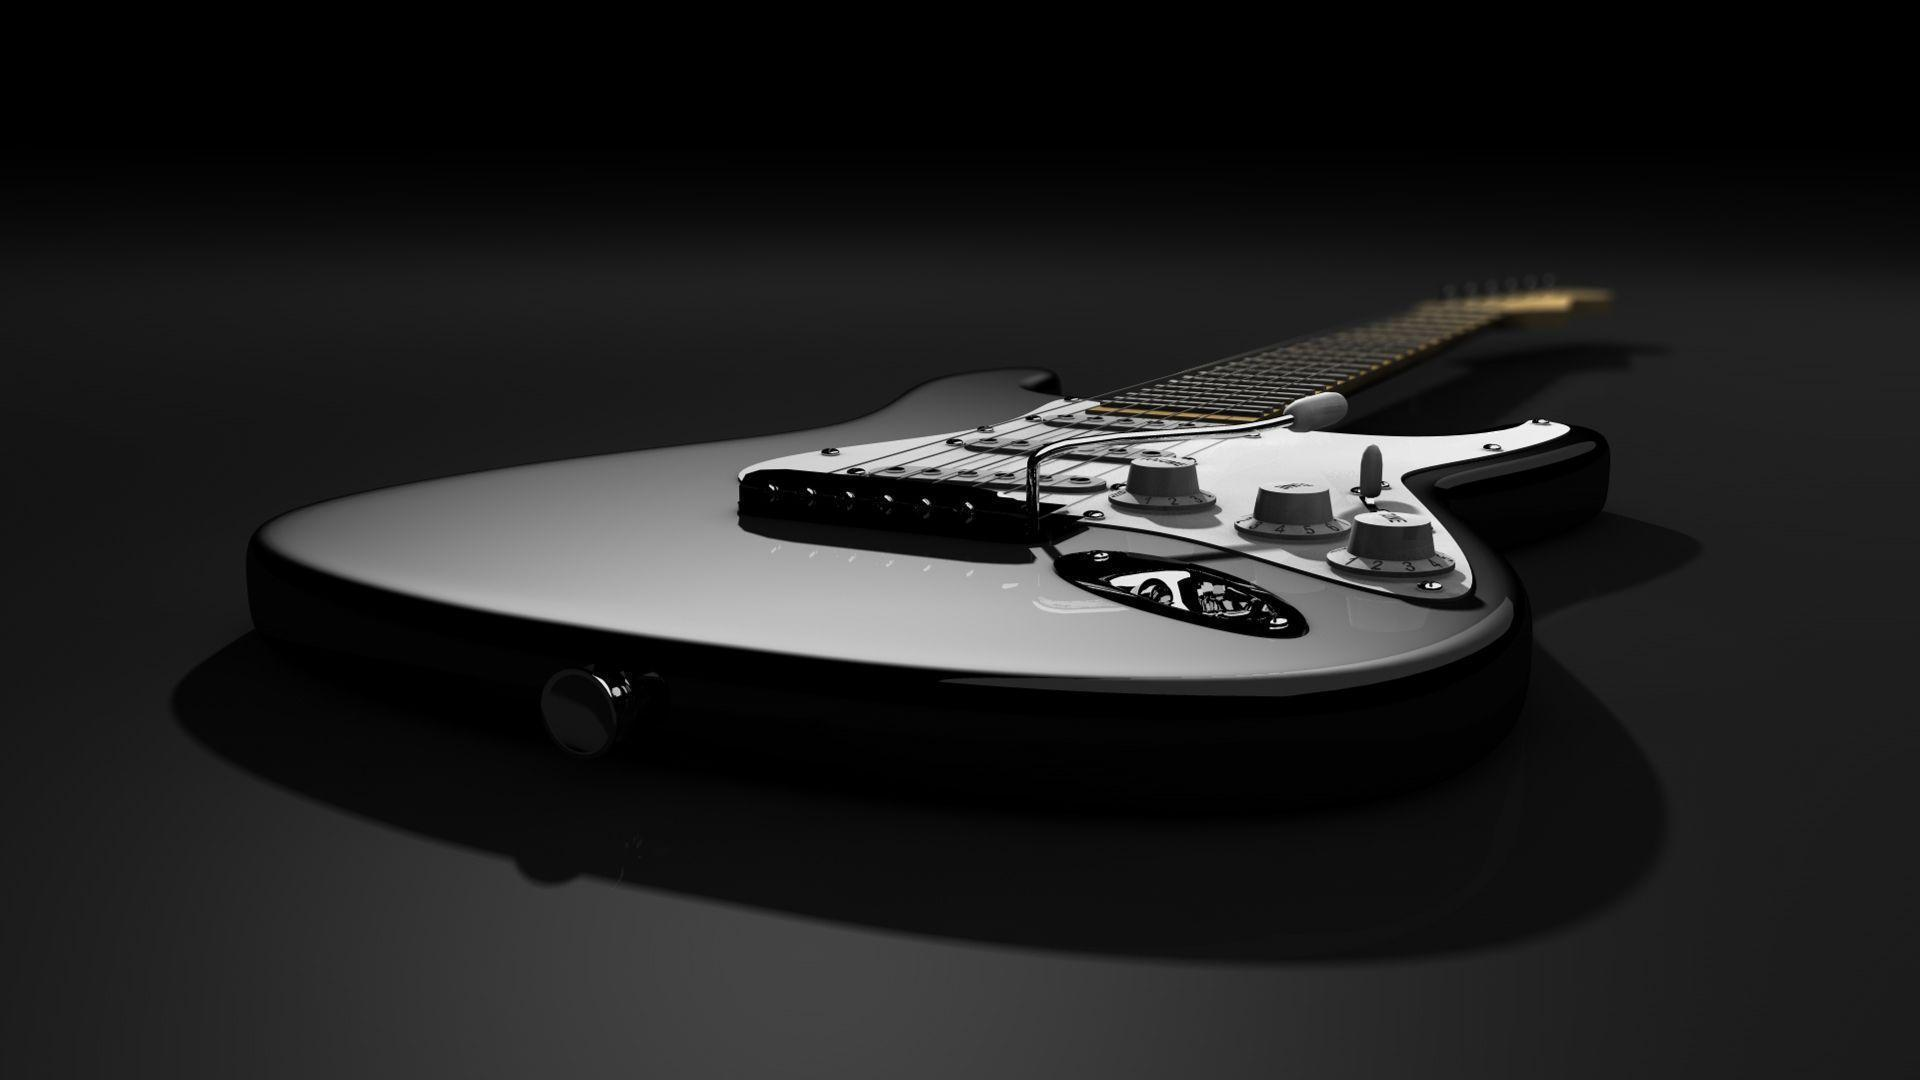 Fender Stratocaster Wallpaper | Music Wallpapers Widescreen .